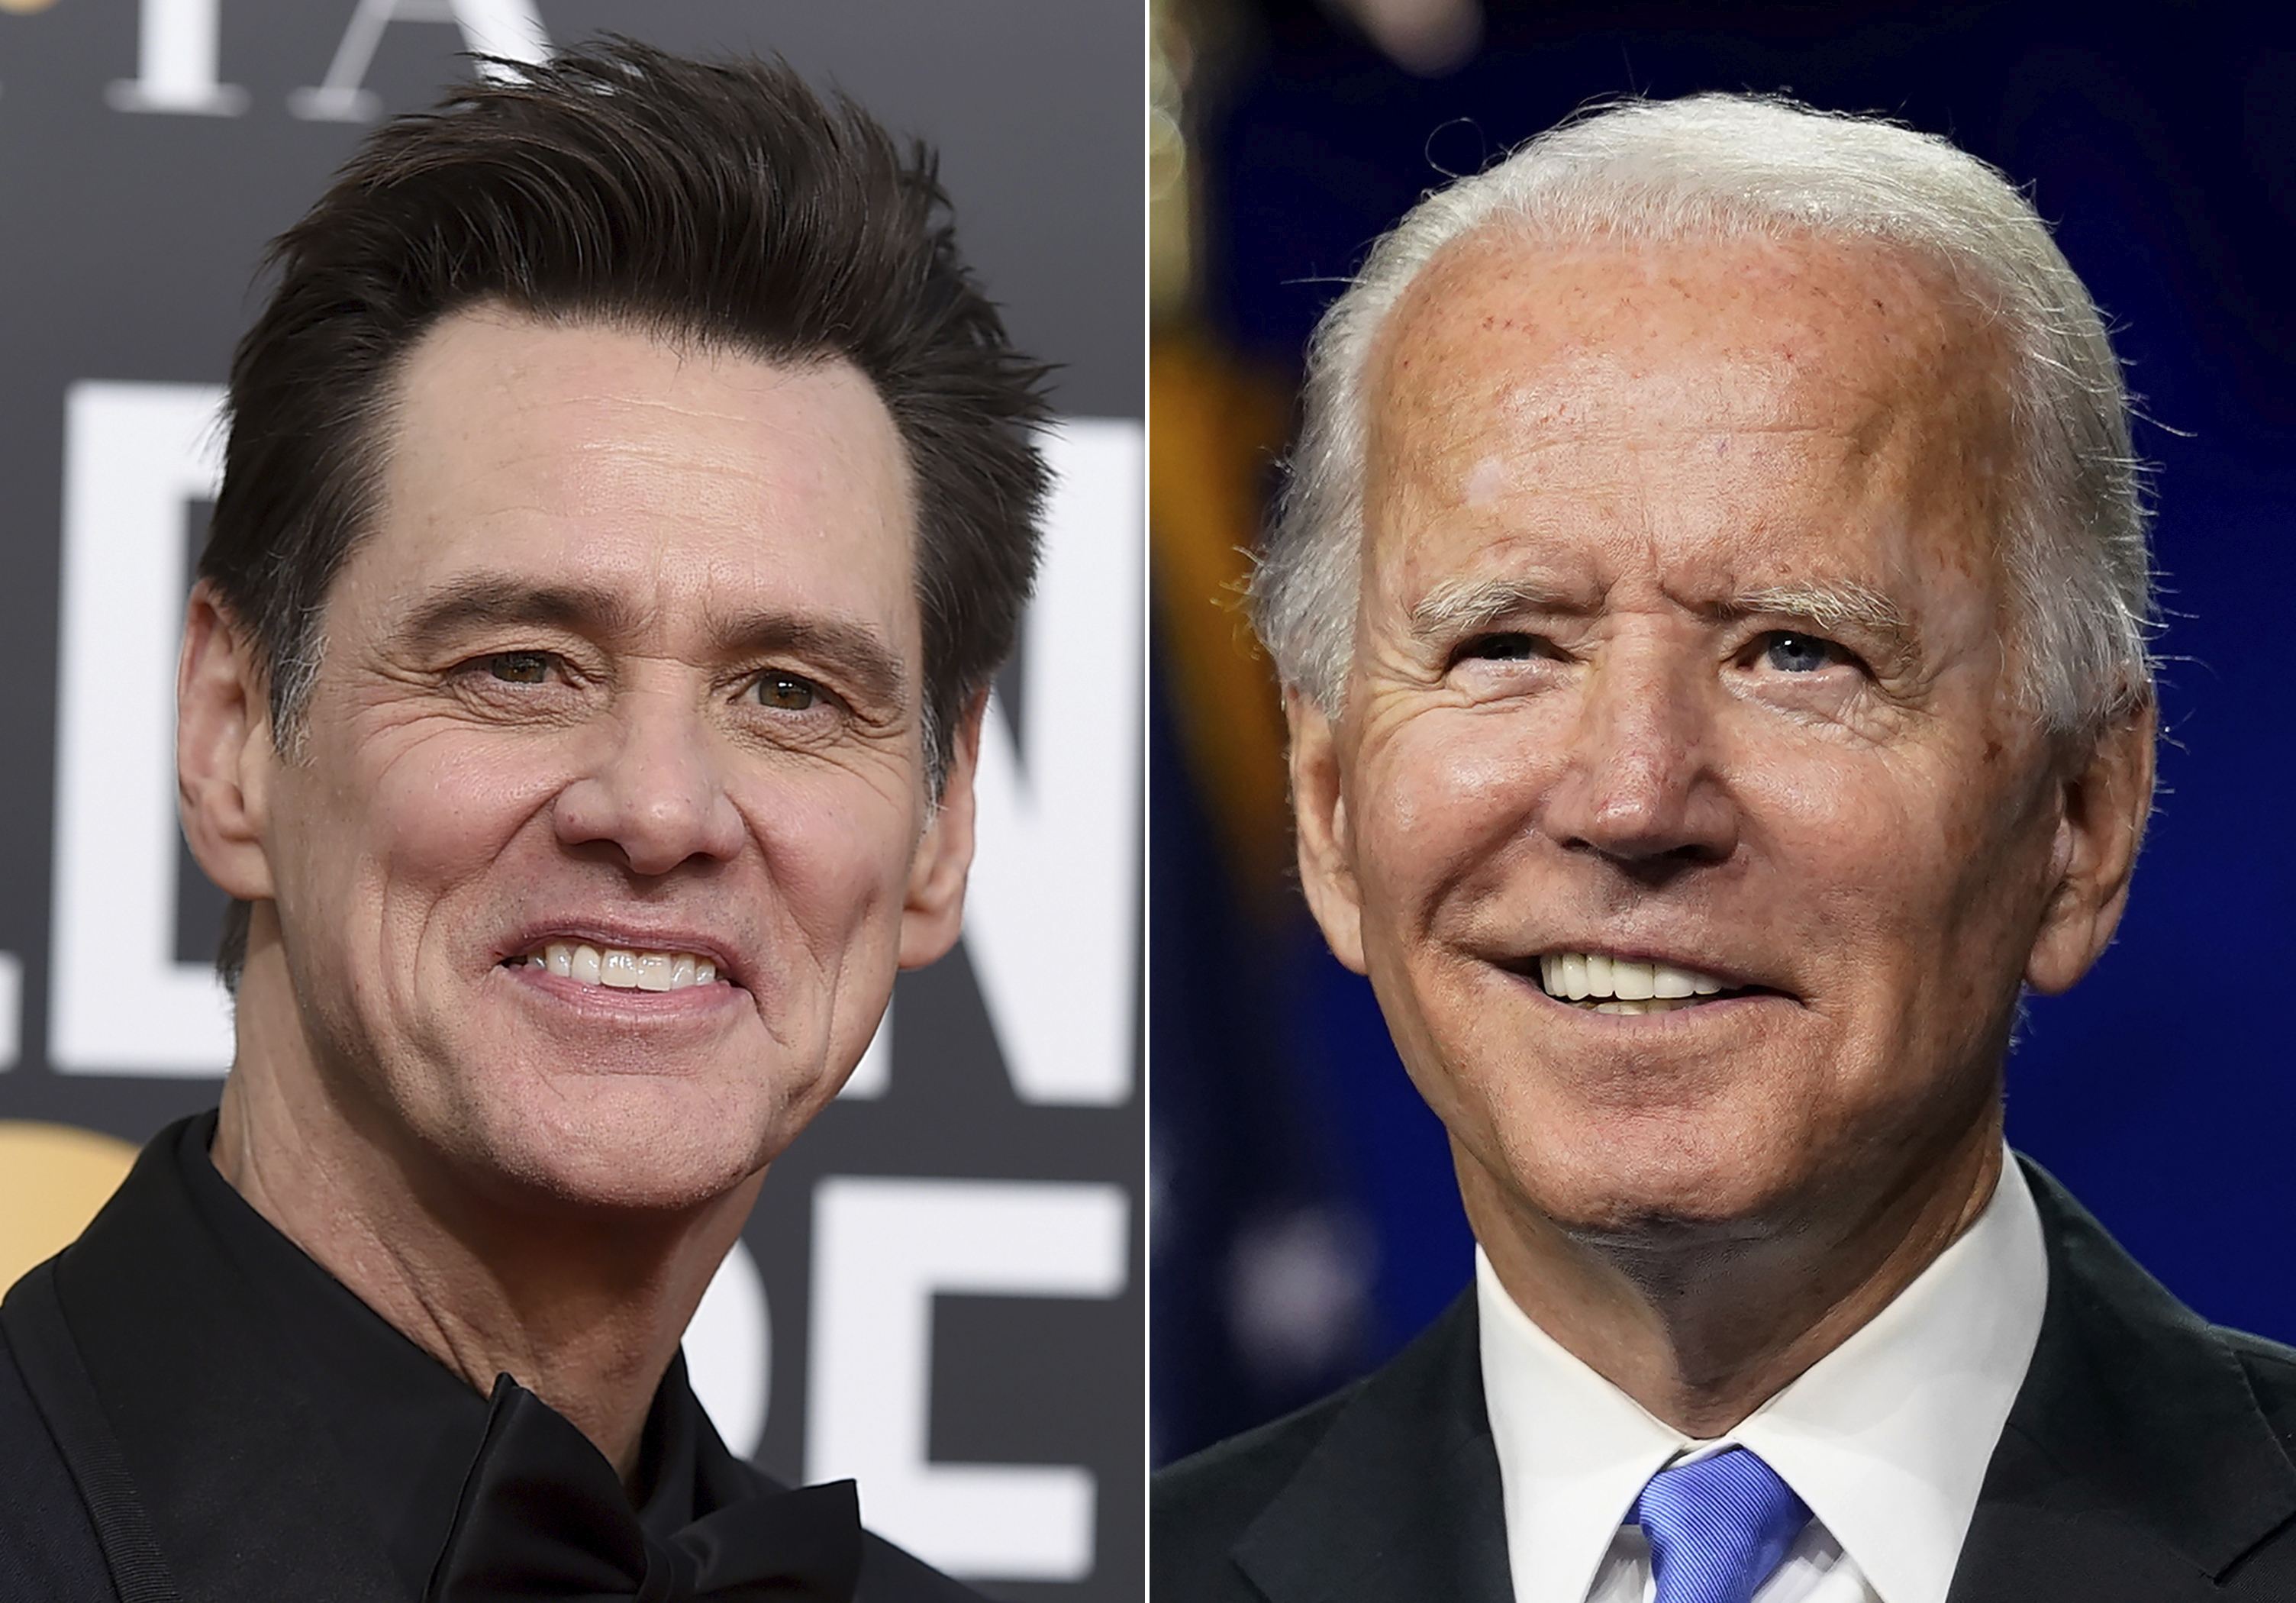 FILE - Actor-comedian Jim Carrey appears at the 76th annual Golden Globe Awards in Beverly Hills, Calif., on Jan. 6, 2019, left, and Democratic presidential candidate former Vice President Joe Biden speaks during the fourth day of the Democratic National Convention, in Wilmington, Del., on Aug. 20, 2020. Photo: AP